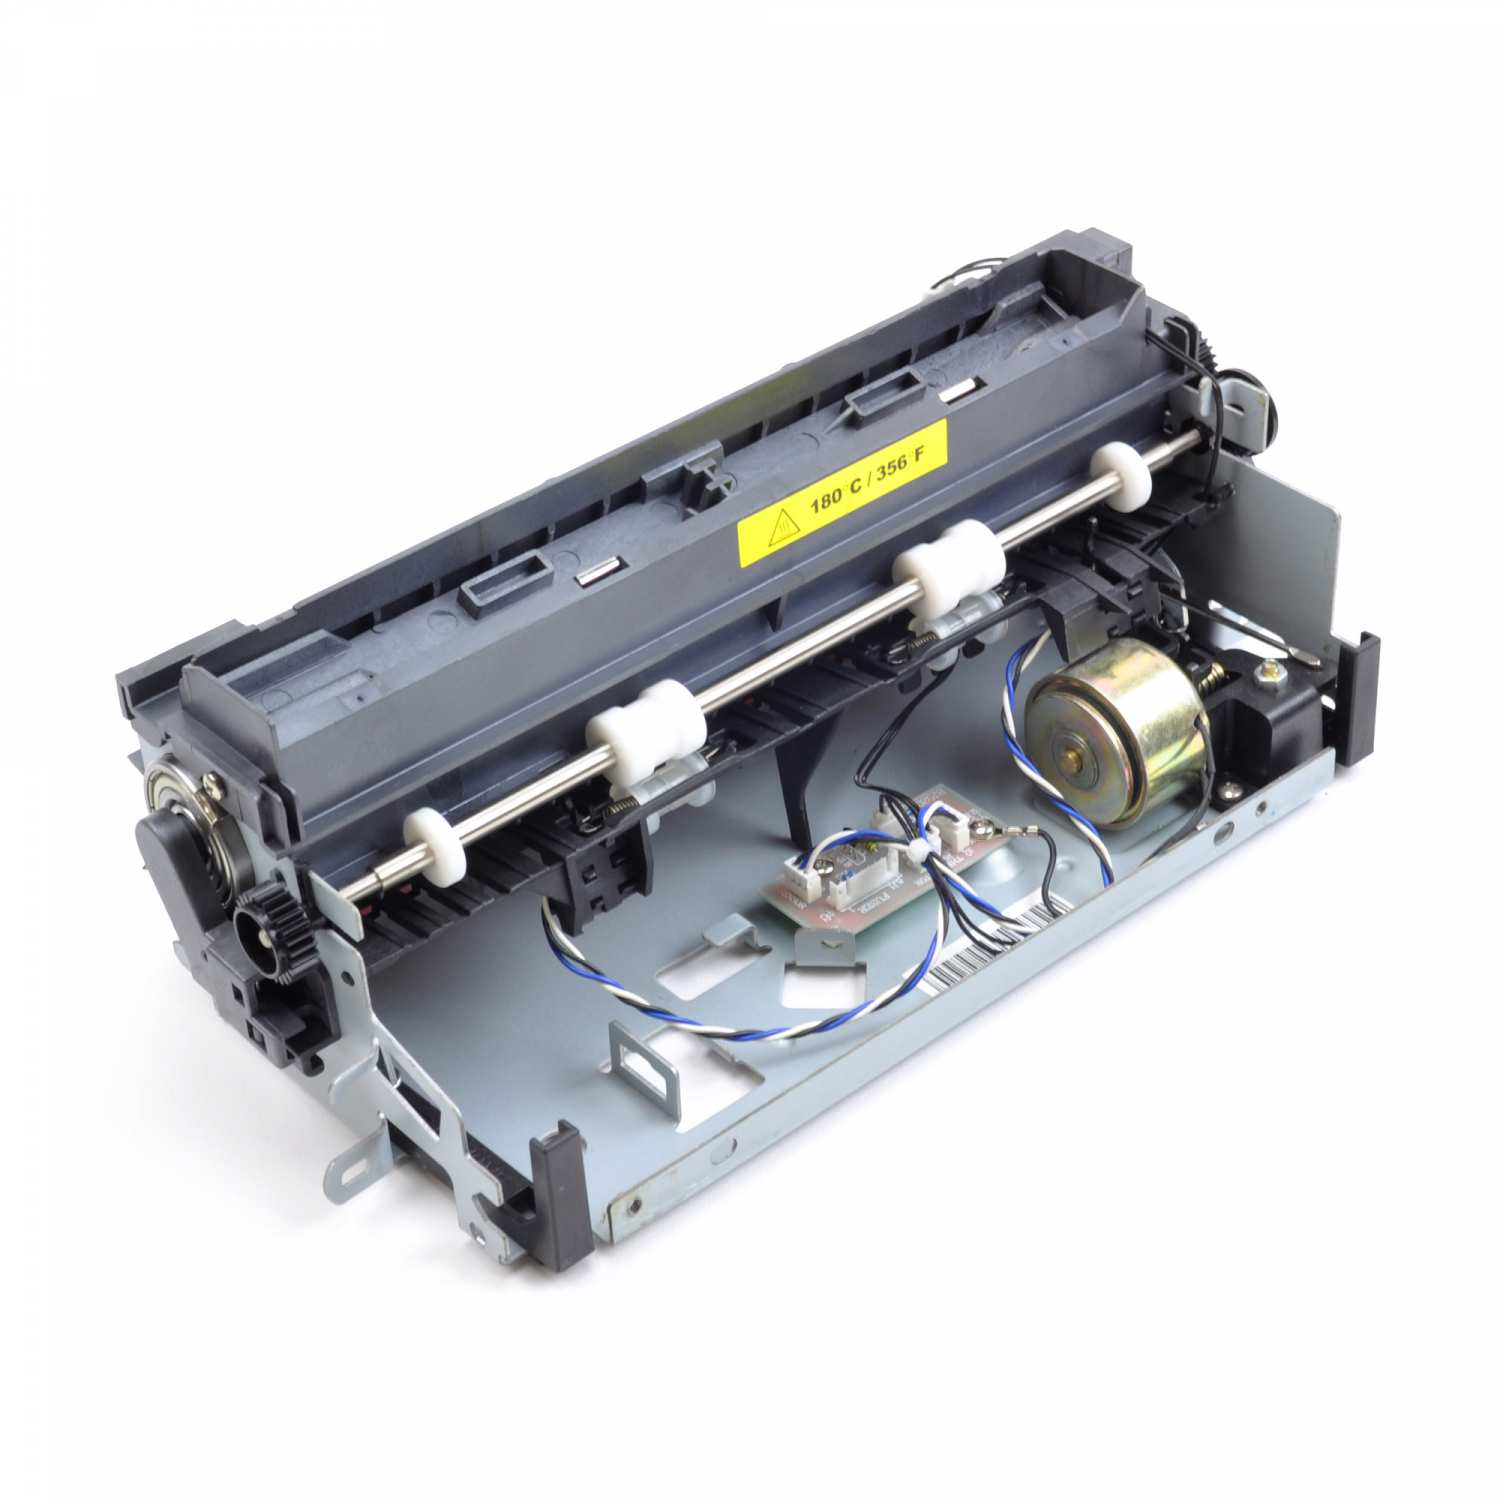 99A2422 Fuser Assembly (220V) Purchase for IBM T52x, InfoPrint 1120